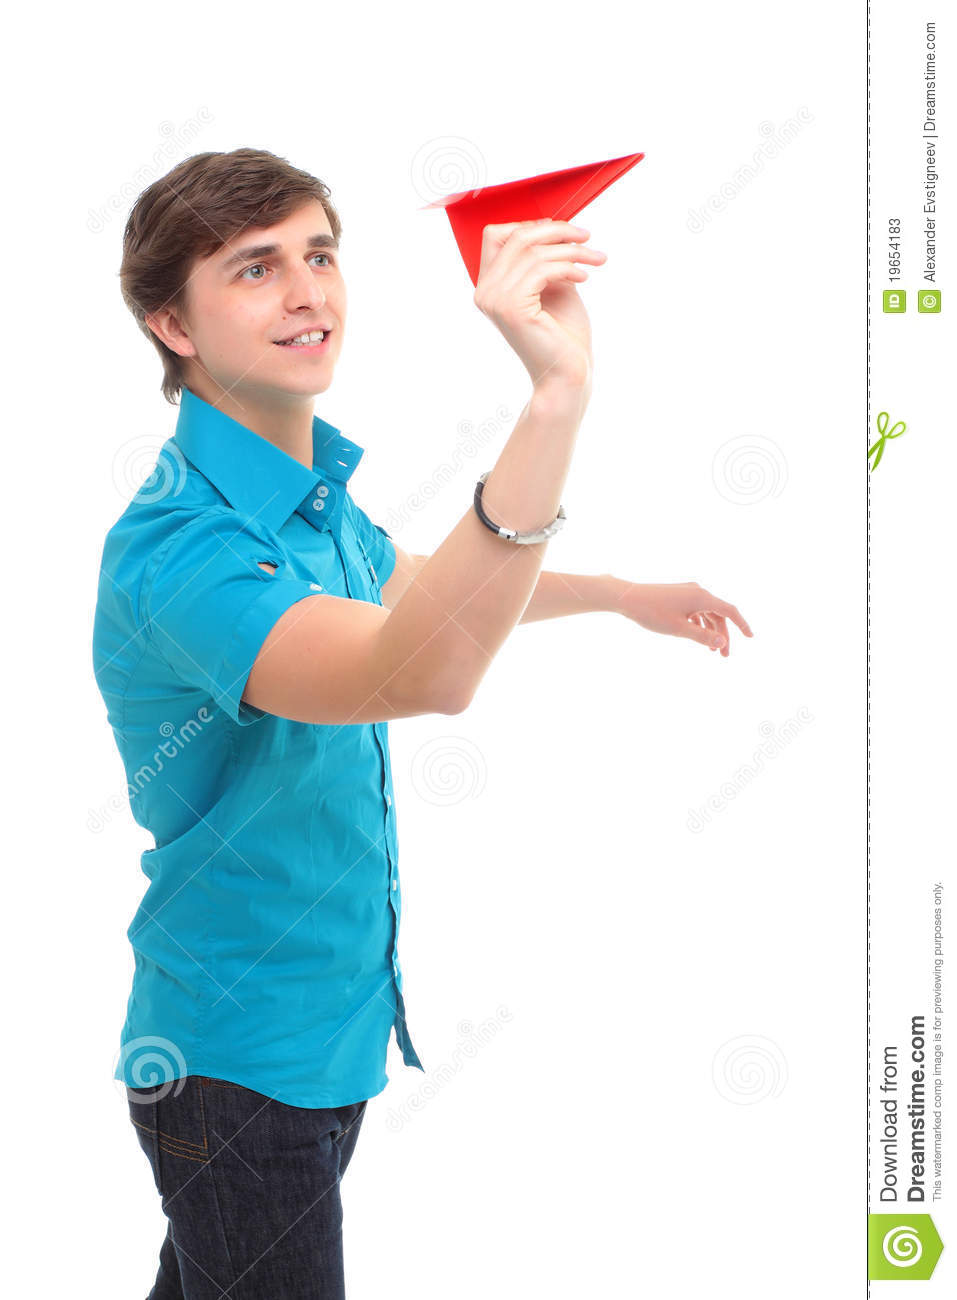 young-man-holding-paper-airplane-19654183.jpg